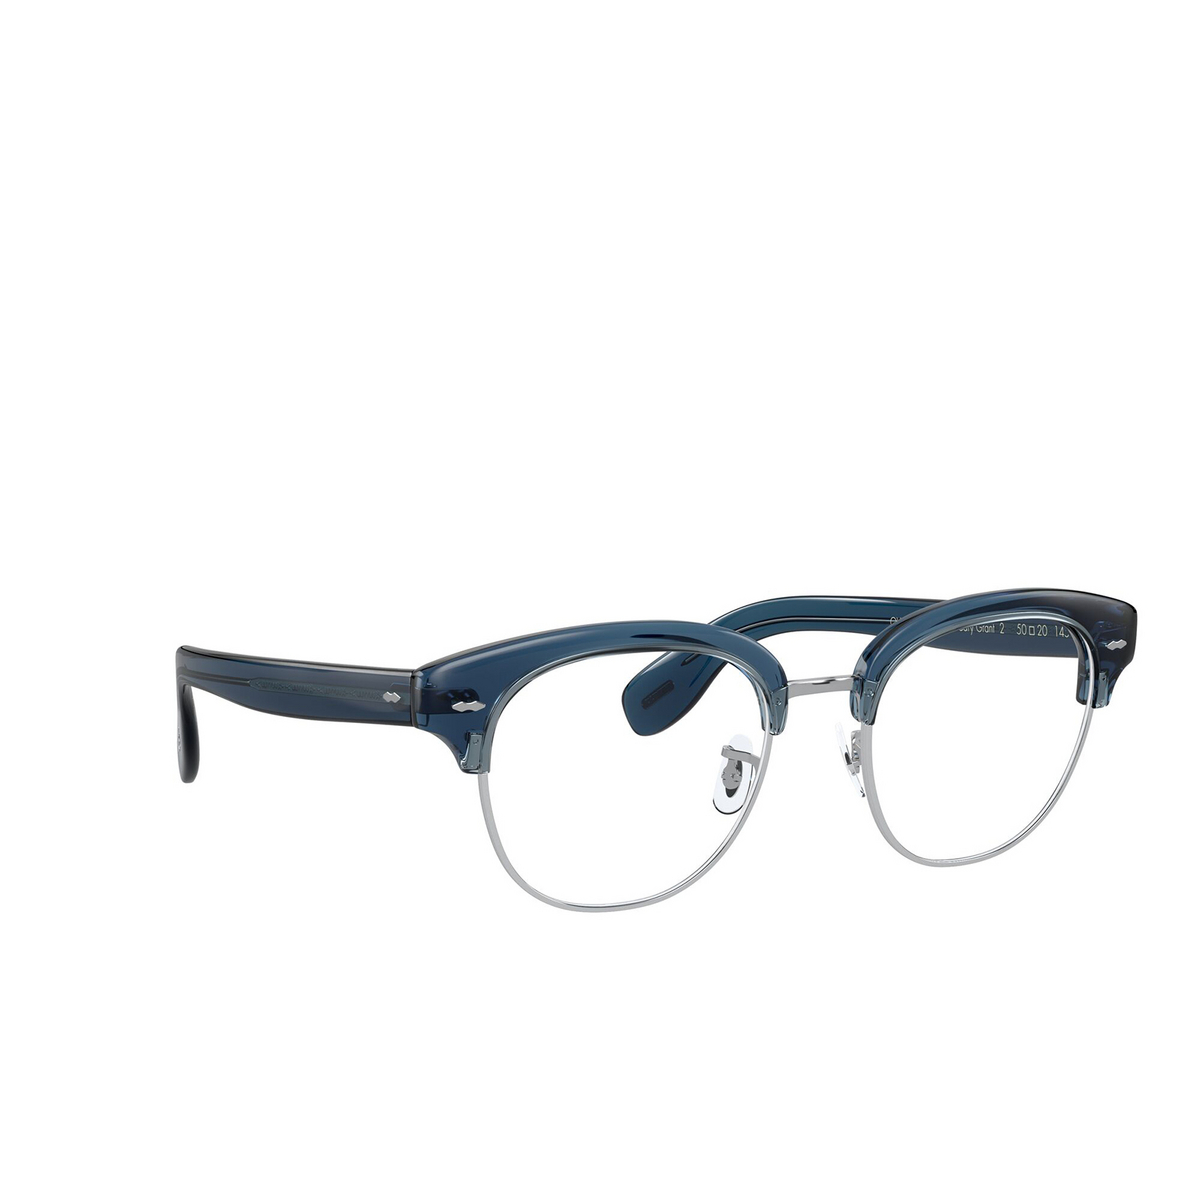 Oliver Peoples® Square Eyeglasses: Cary Grant 2 OV5436 color Deep Blue 1670 - three-quarters view.